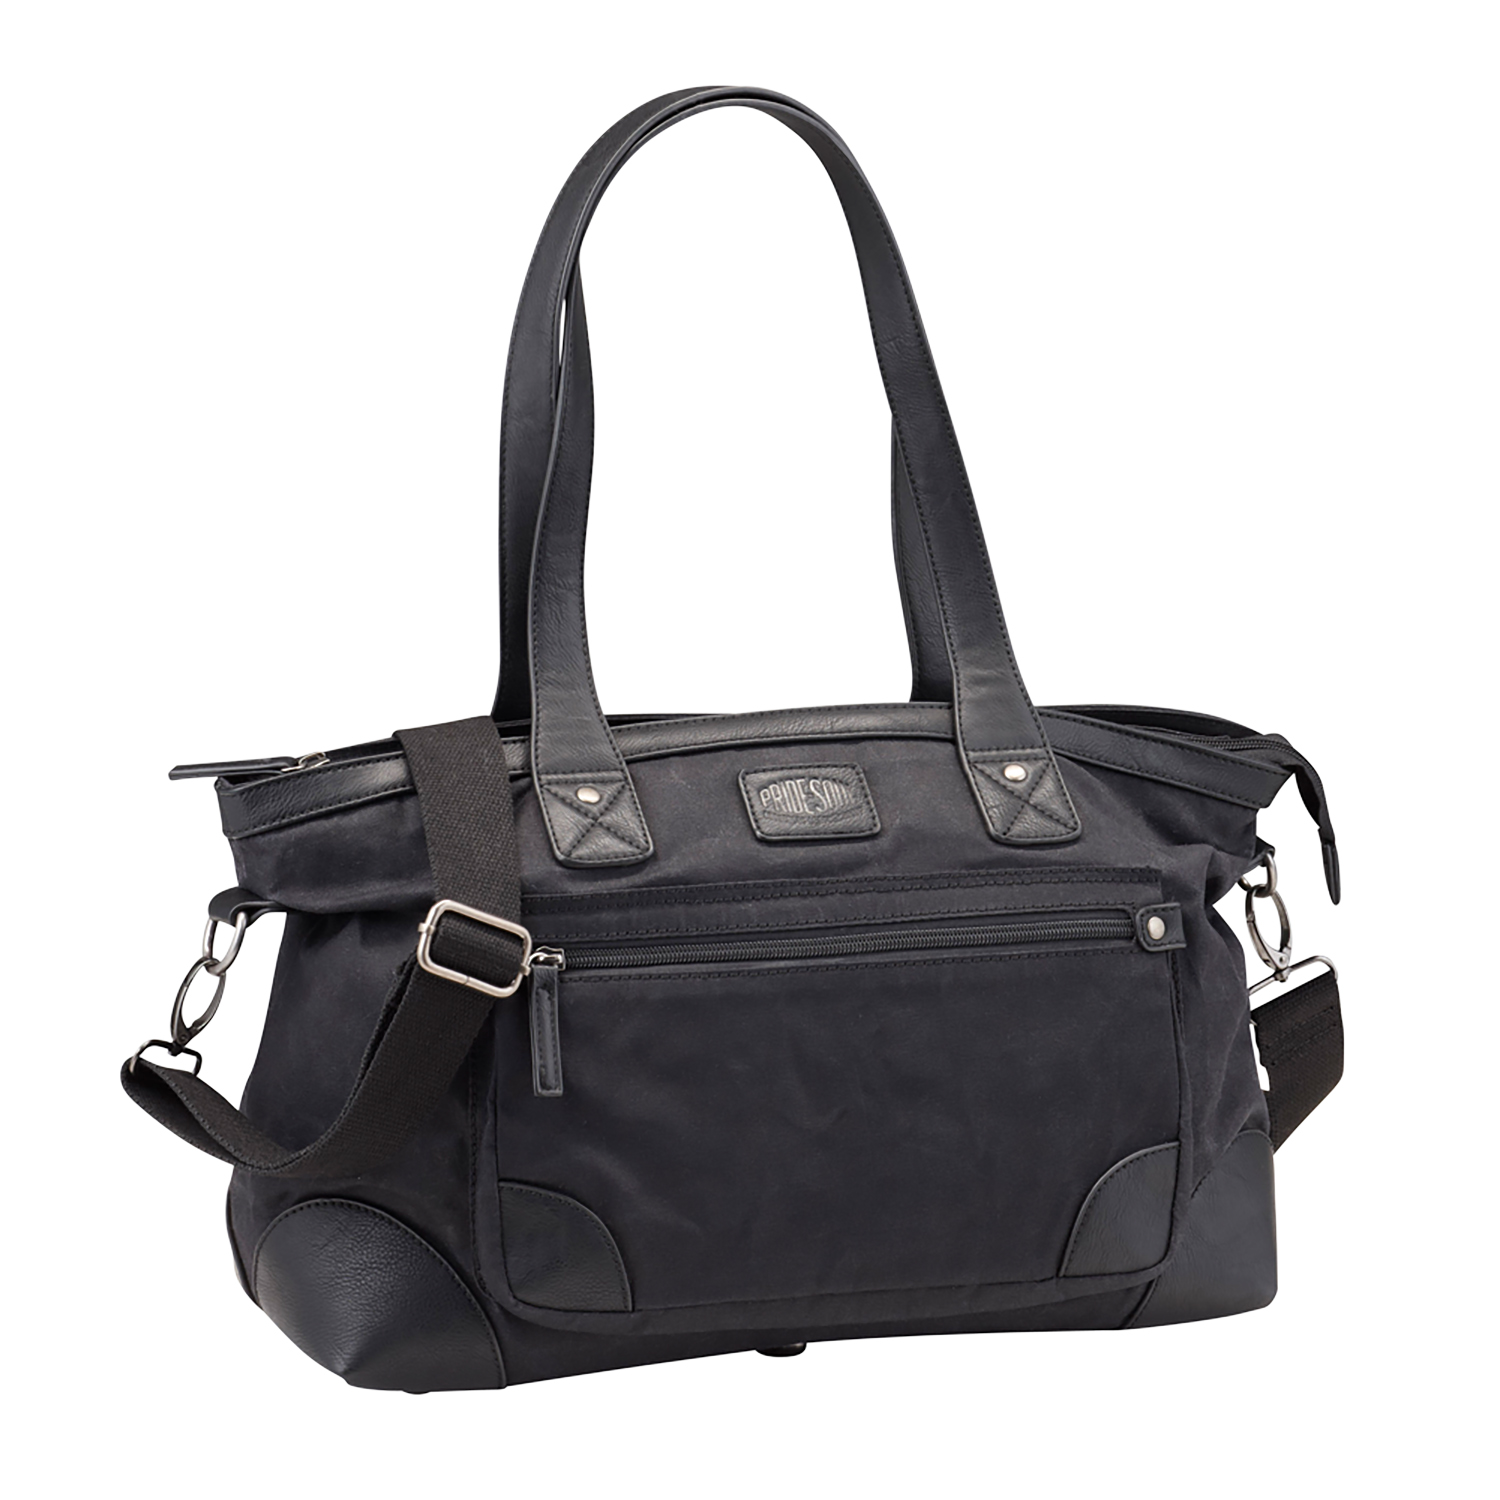 Image for Pride and Soul Heaven Handbag with Secure Zip Closure Ref 47306